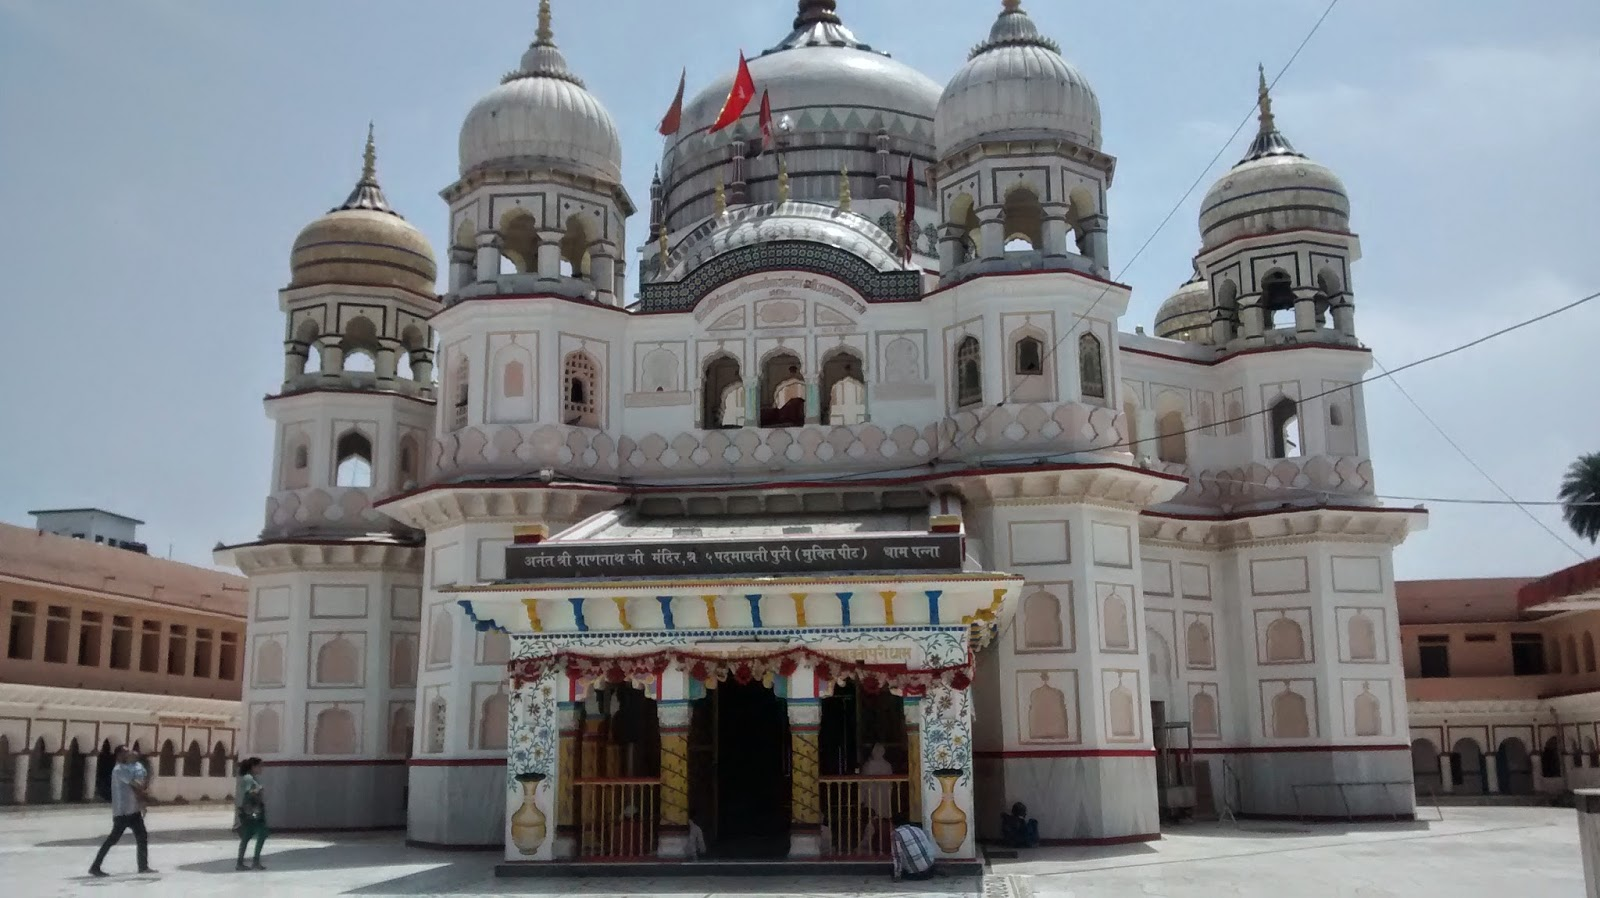 REFORM INDIA: My visit to Panna the historicand religious ...